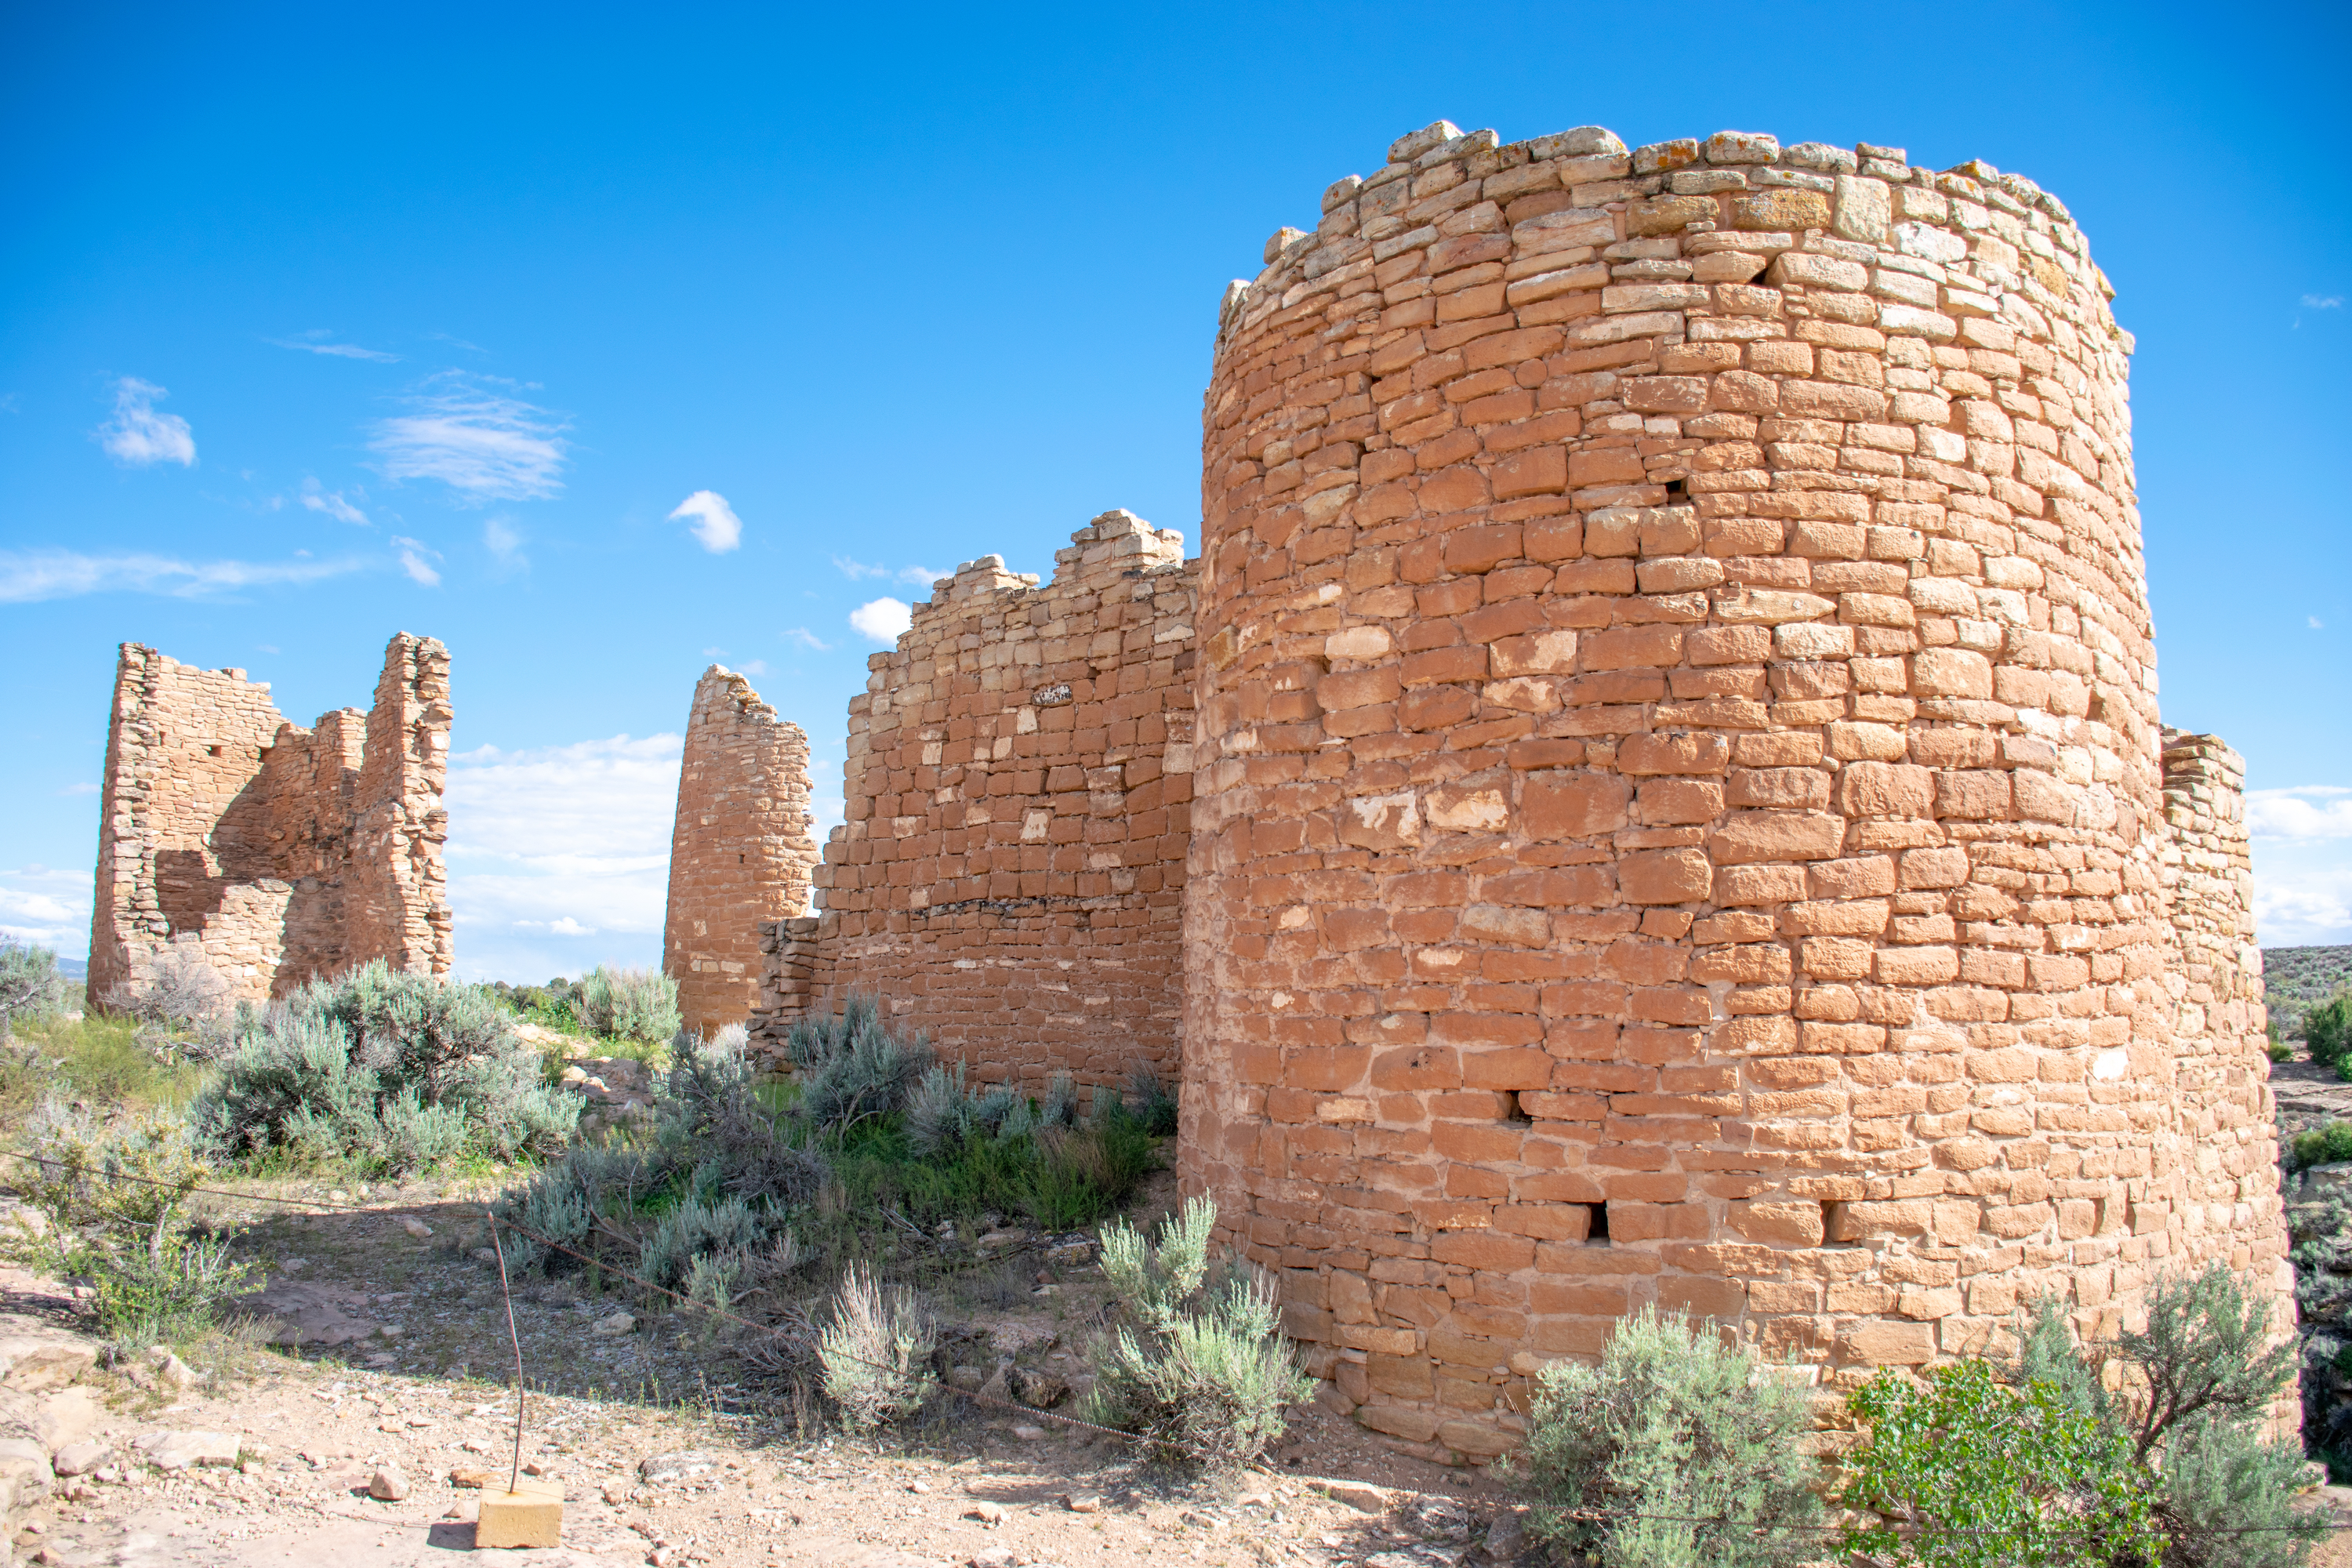 Hovenweep Castle Ruins at Hovenweep National Monument